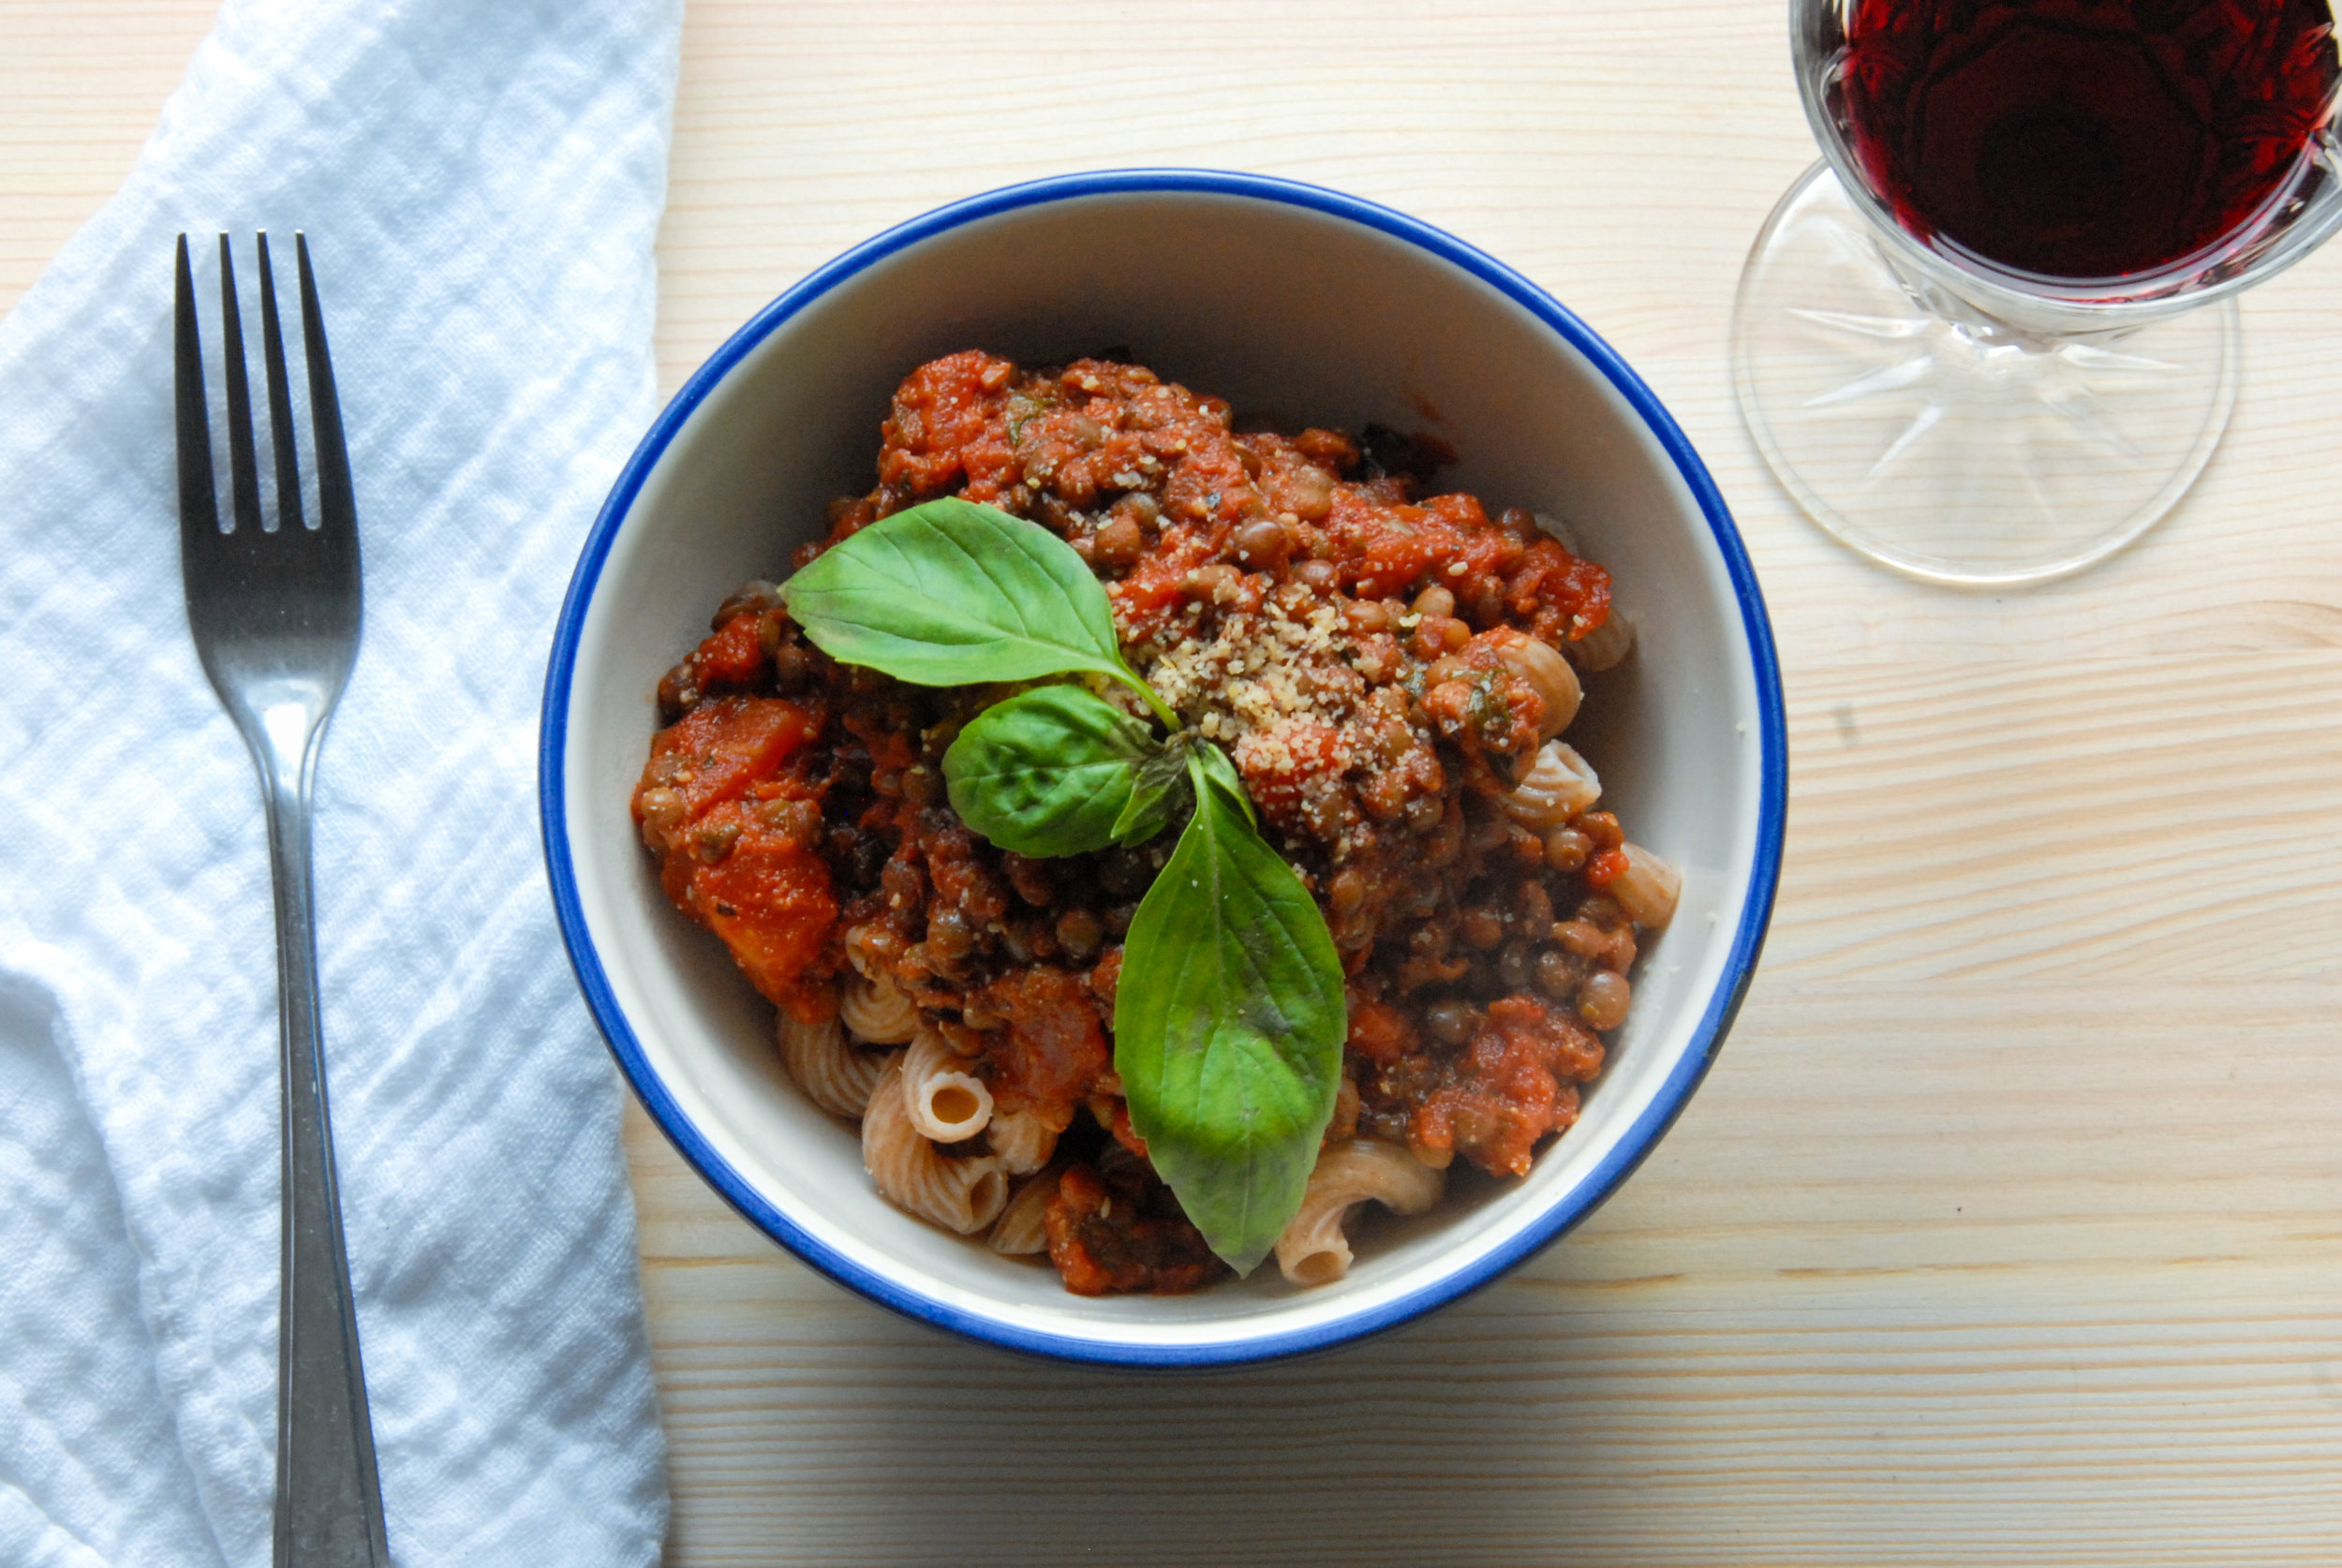 Easy Vegan Bolognese Recipe - Bolognese is a classic traditional comfort food, and it turns out that swapping the animal ingredients for plant-based alternatives doesn't sacrifice flavour at all!